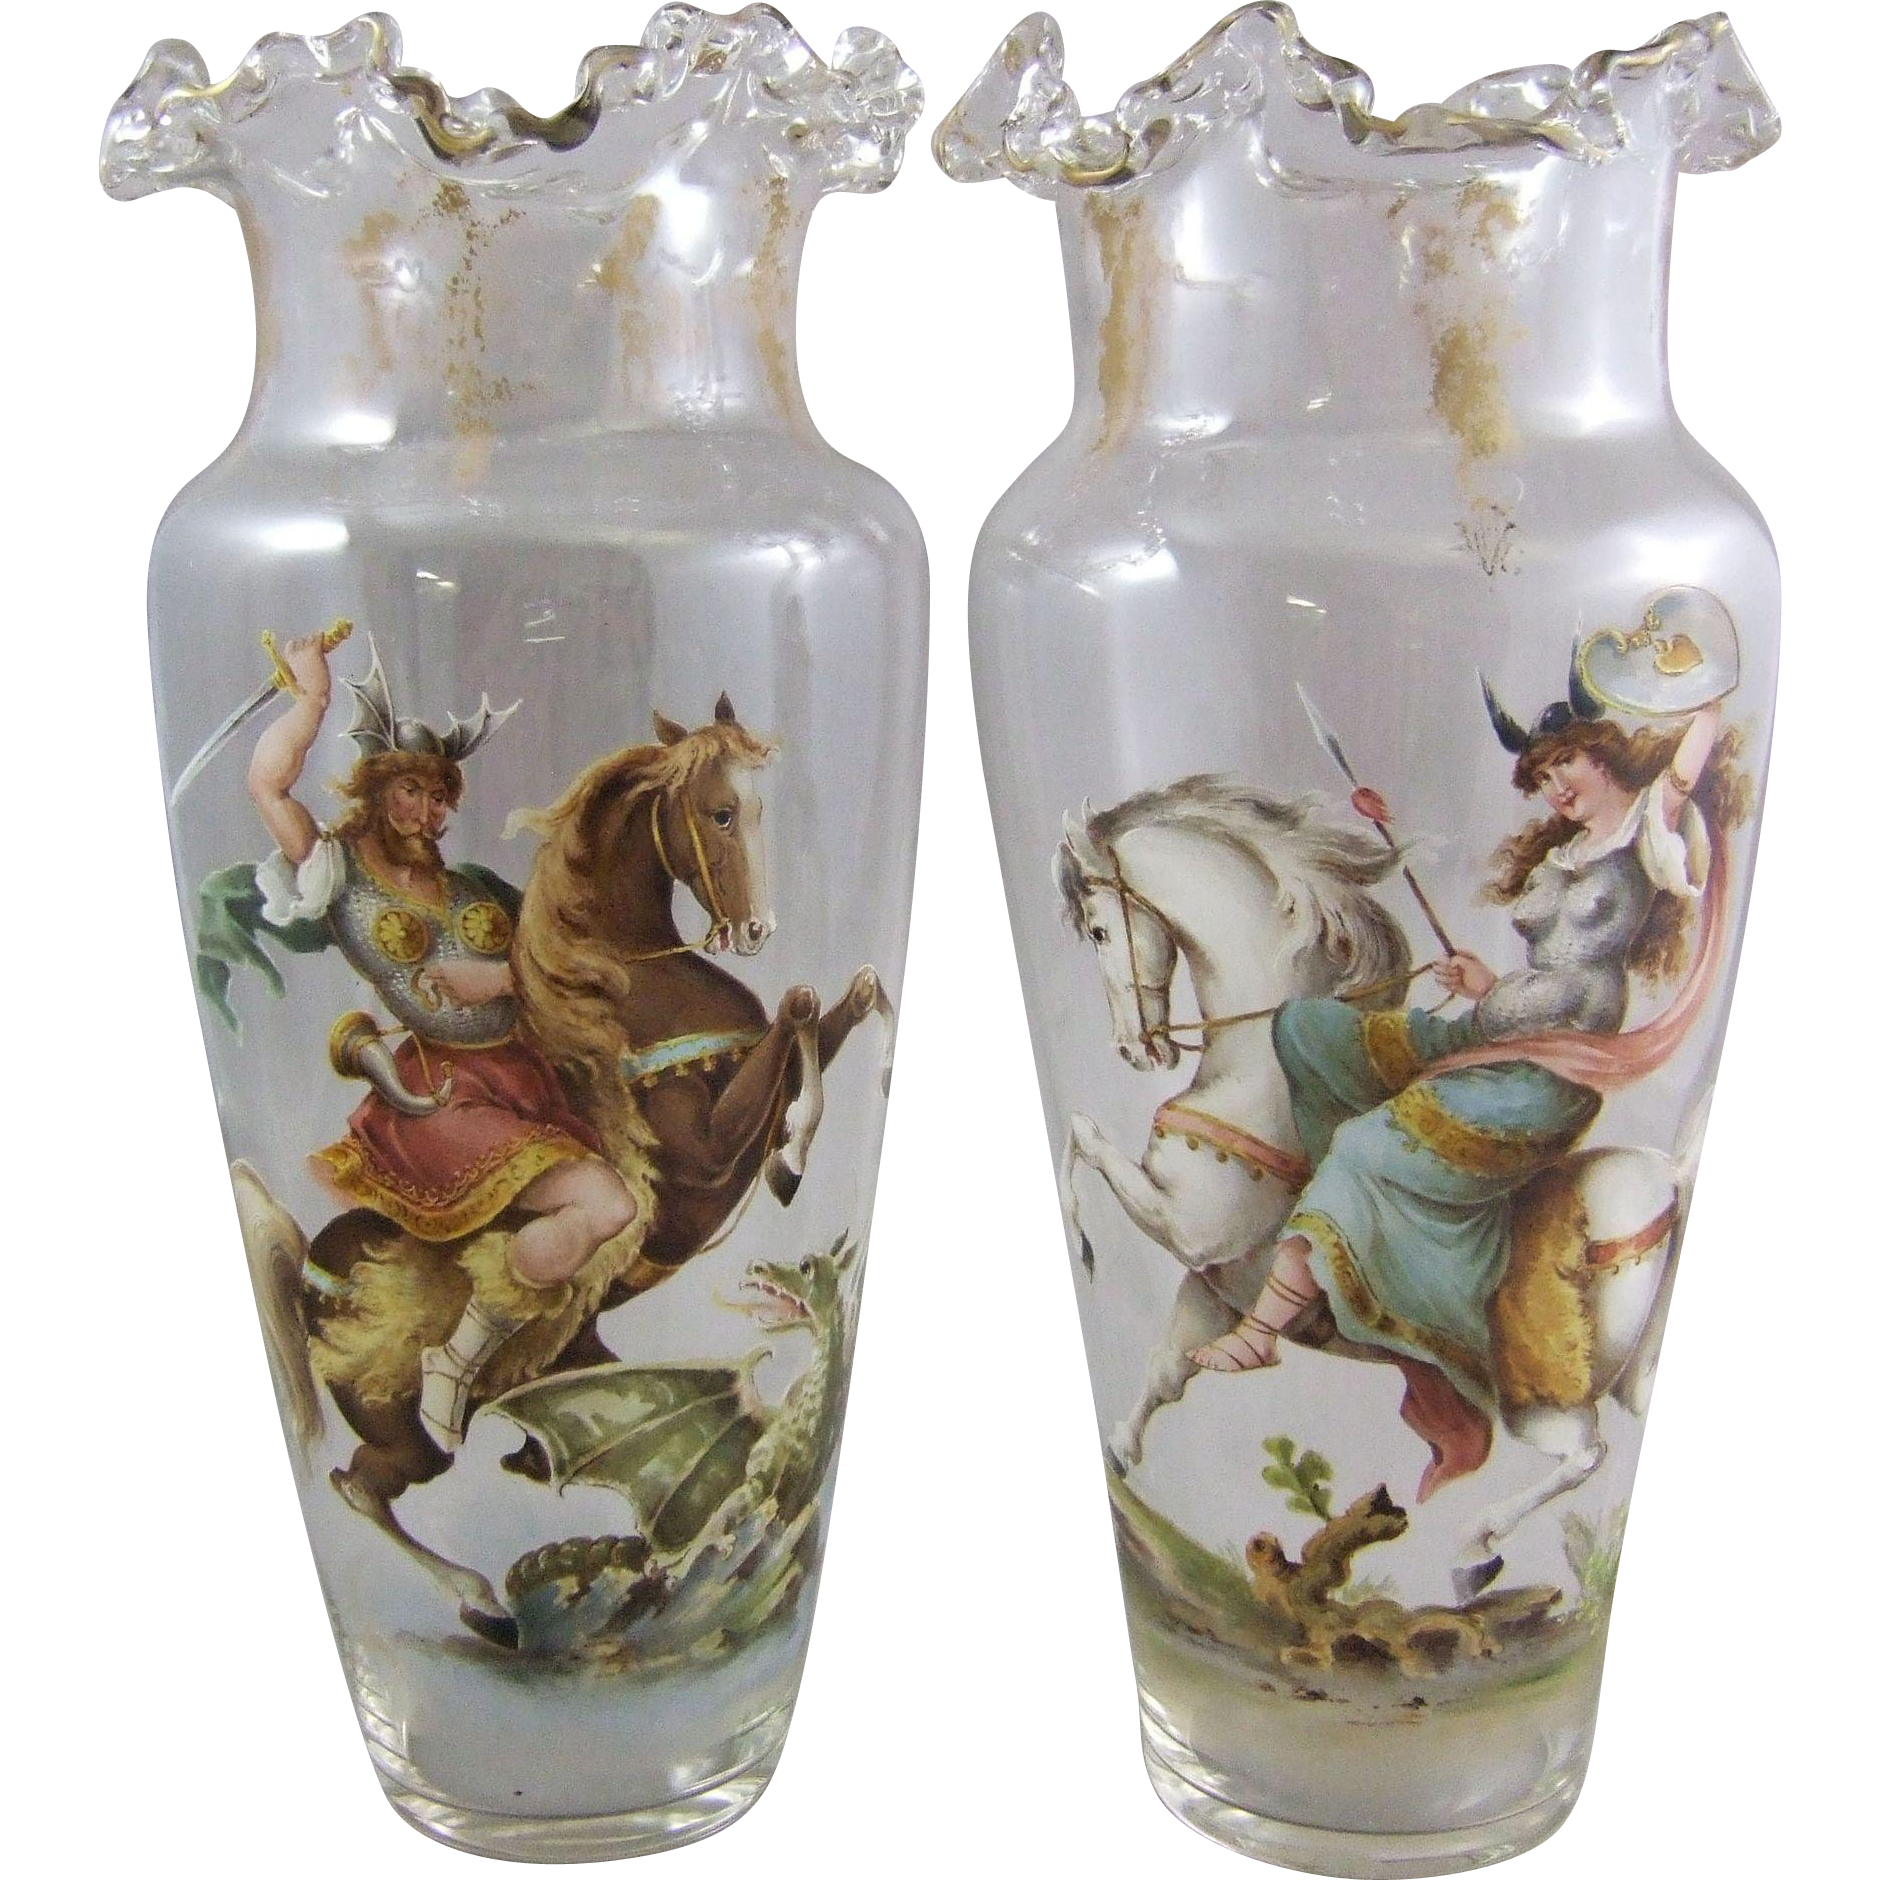 Bohemian Glass Mantle Vases with Mythological Figures a Dragon Slayer and Warrior Maiden